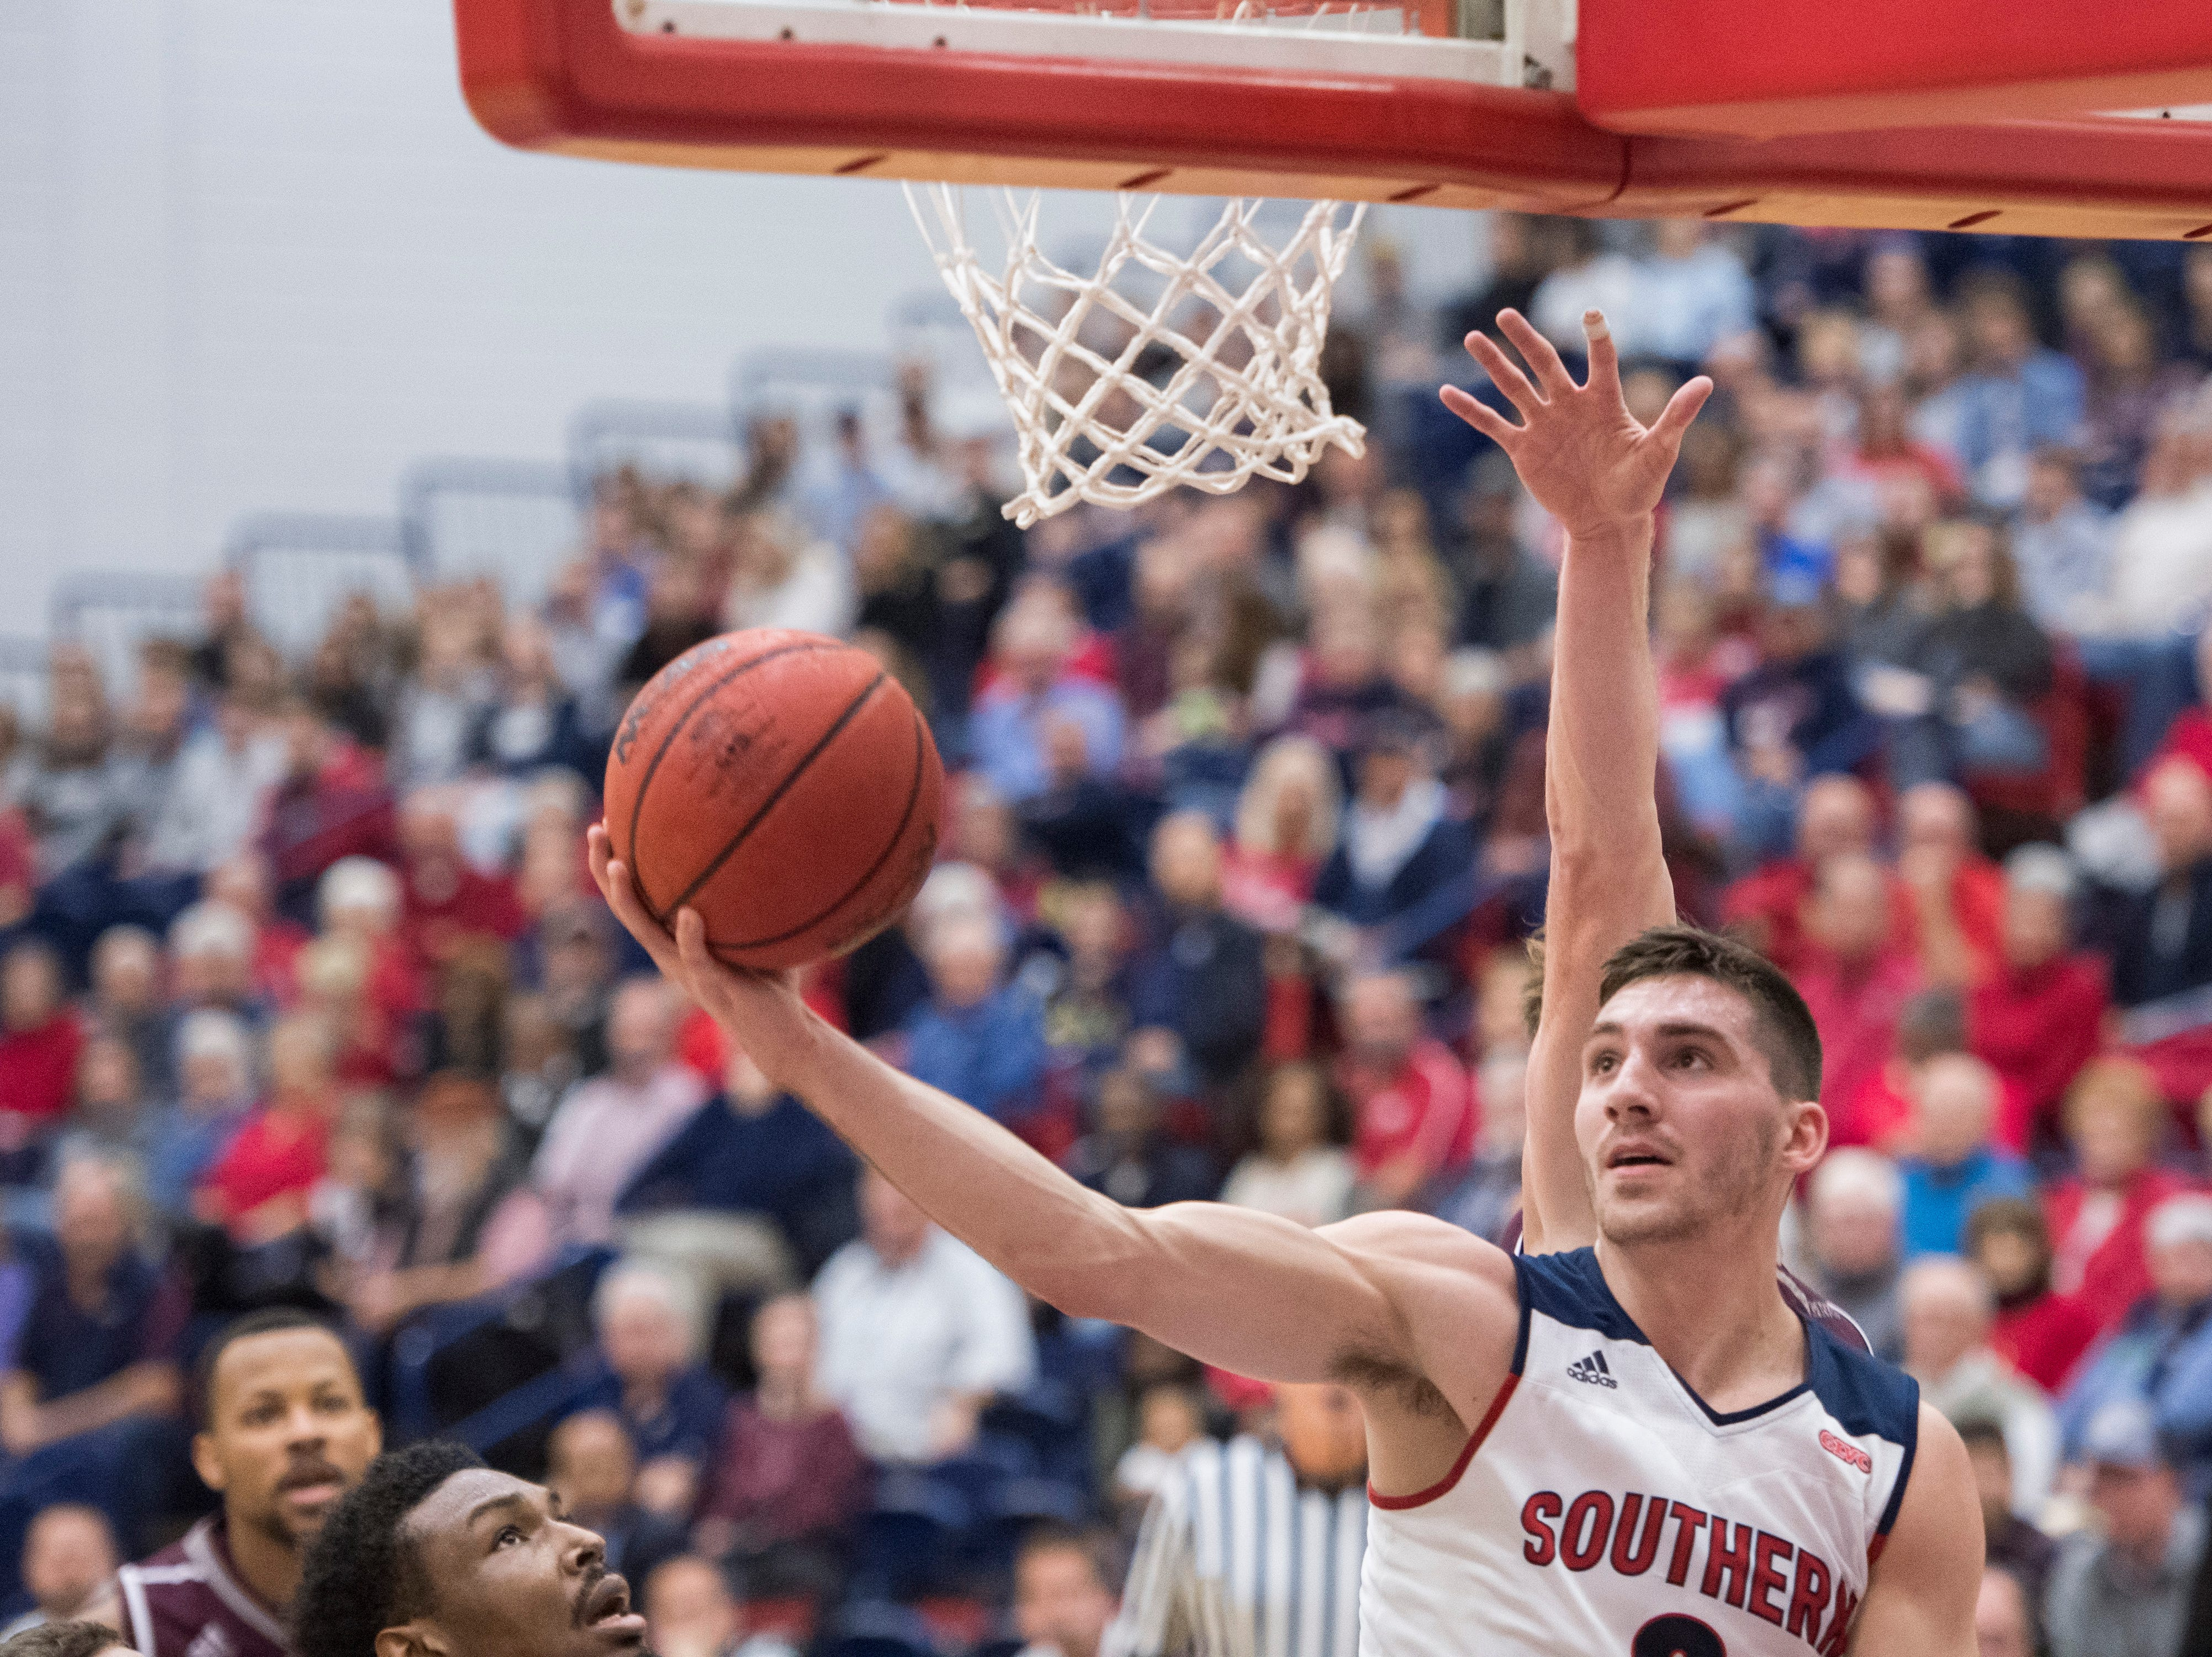 USI's Jacob Norman (2) hooks the ball from under the basket during the USI vs Bellarmine basketball game at the PAC Saturday, Dec. 1, 2018.